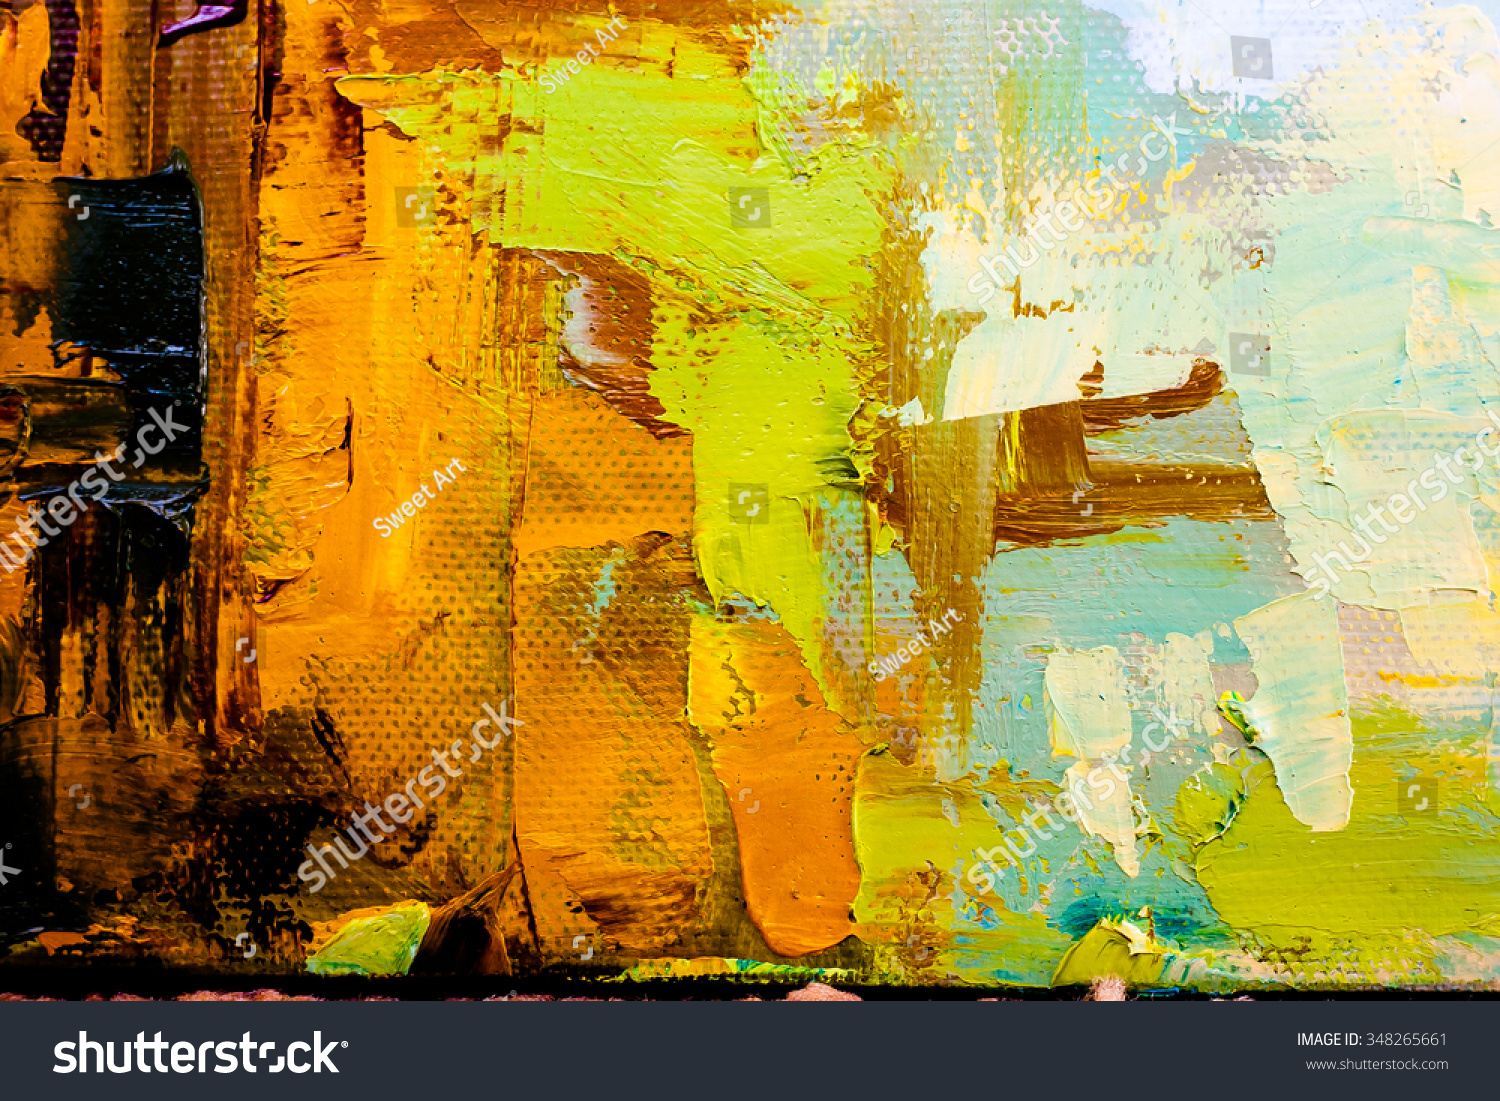 Hand drawn oil painting abstract art stock illustration for What is canvas painting